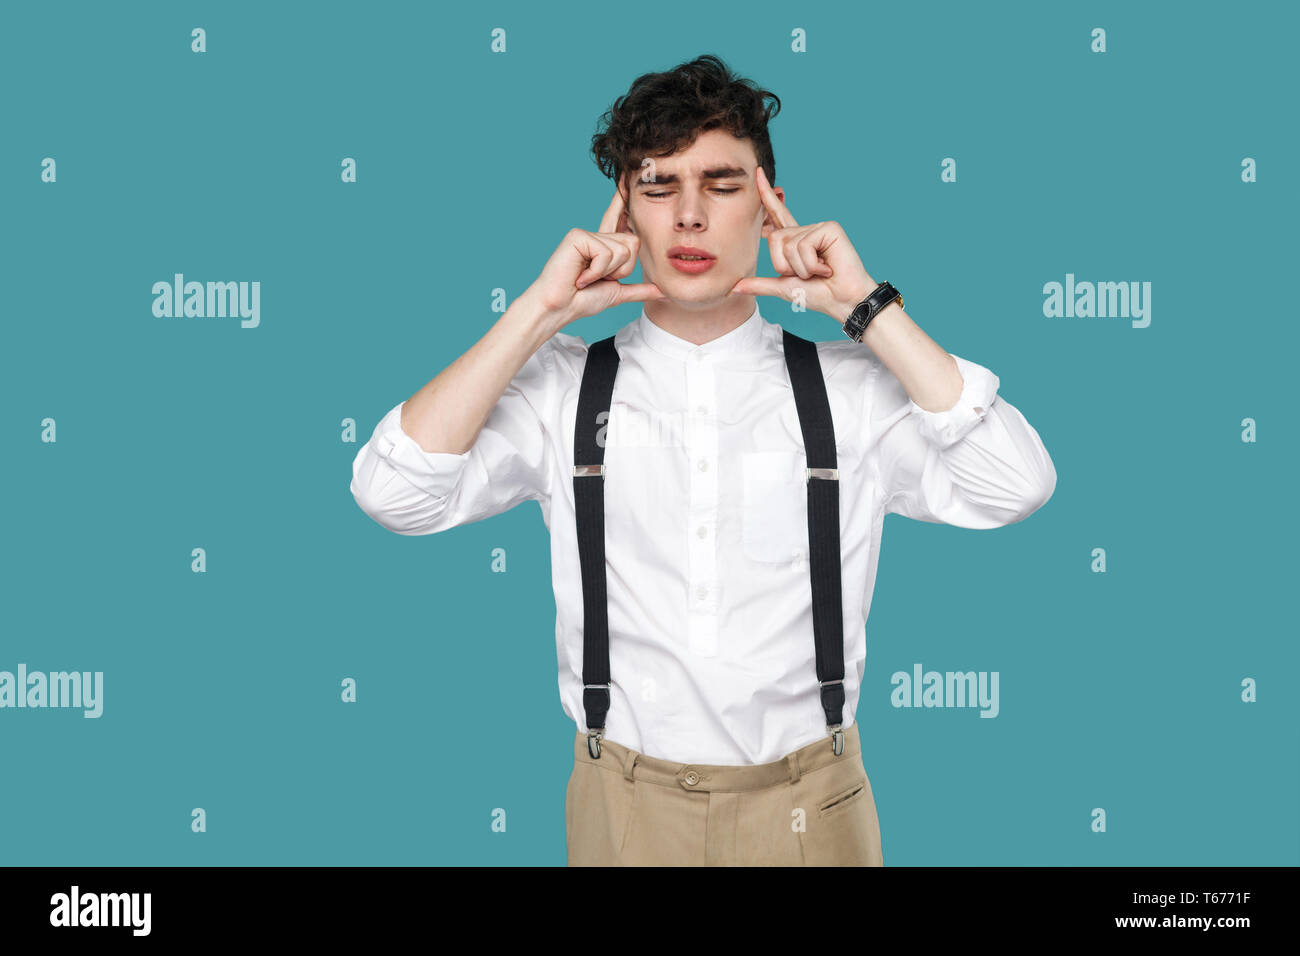 Headache or confusion. upset man holding his head. Portrait of handsome hipster curly young businessman in classic white shirt and suspender standing. Stock Photo